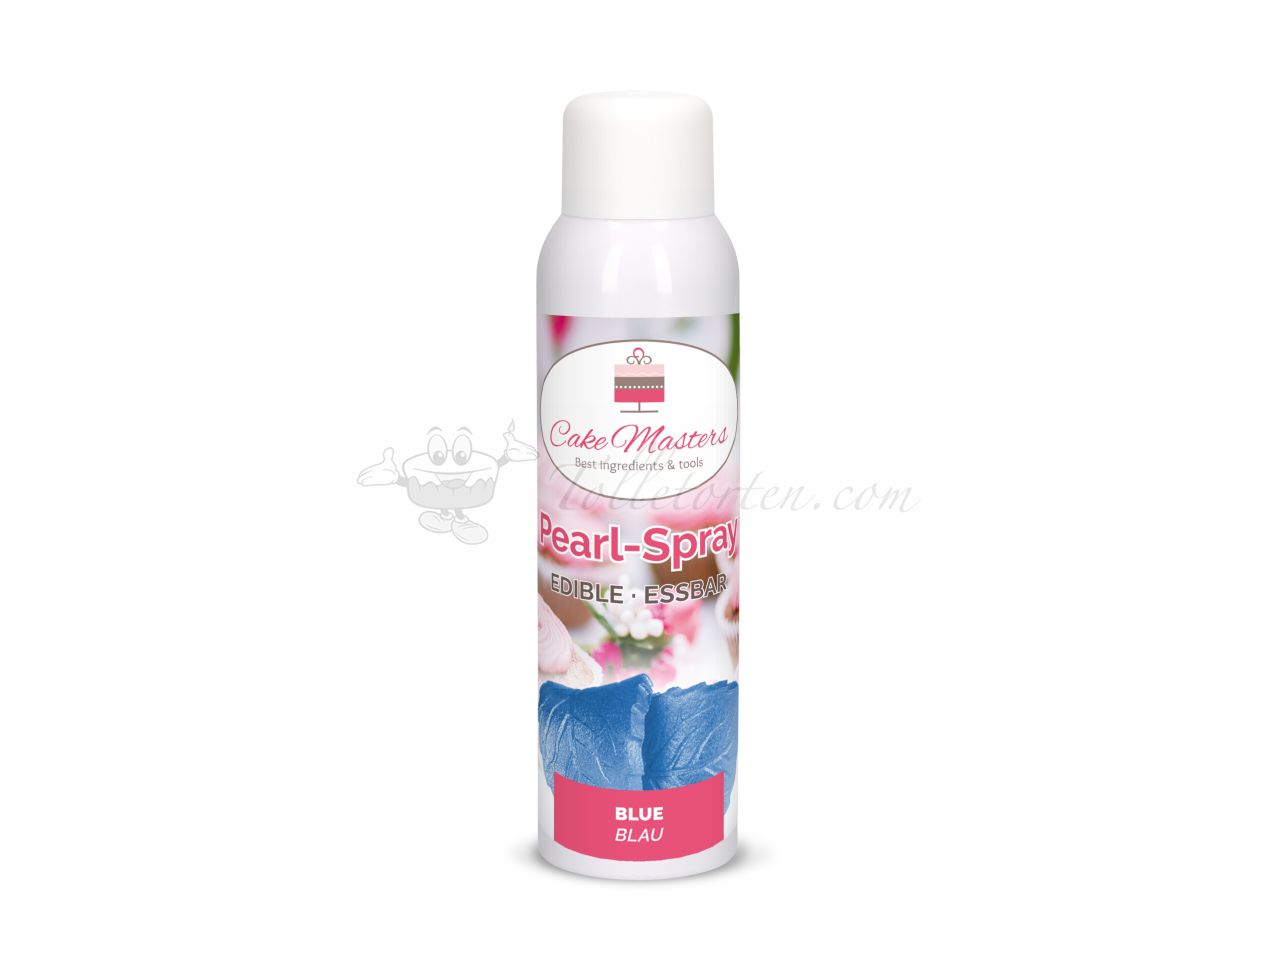 Pearl-Spray Blau 100ml